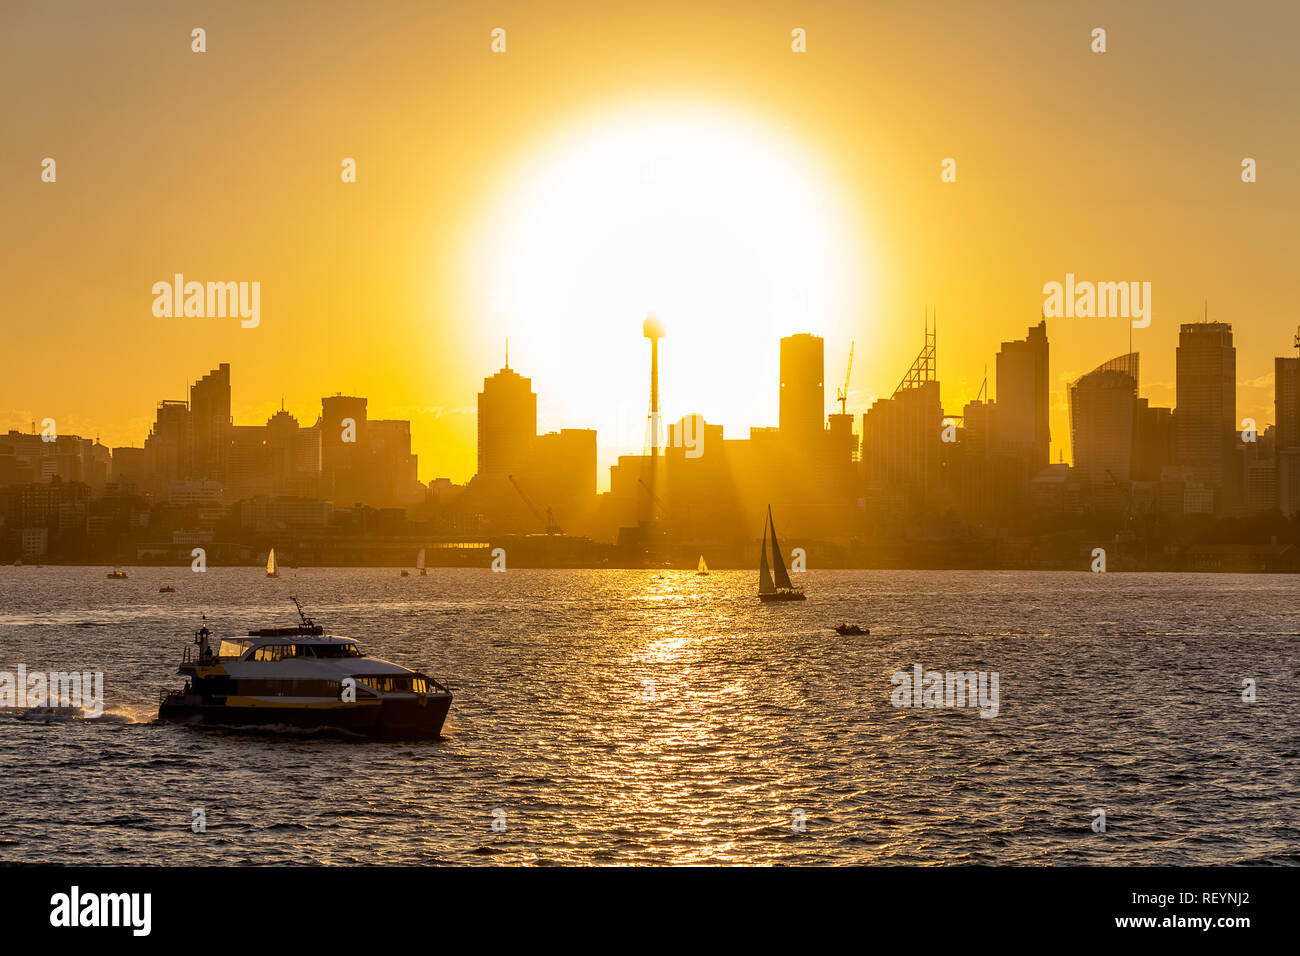 View of downtown Sydney at sunset with Sun disk setting down behind buildings a boat sailing in the foreground - Stock Image